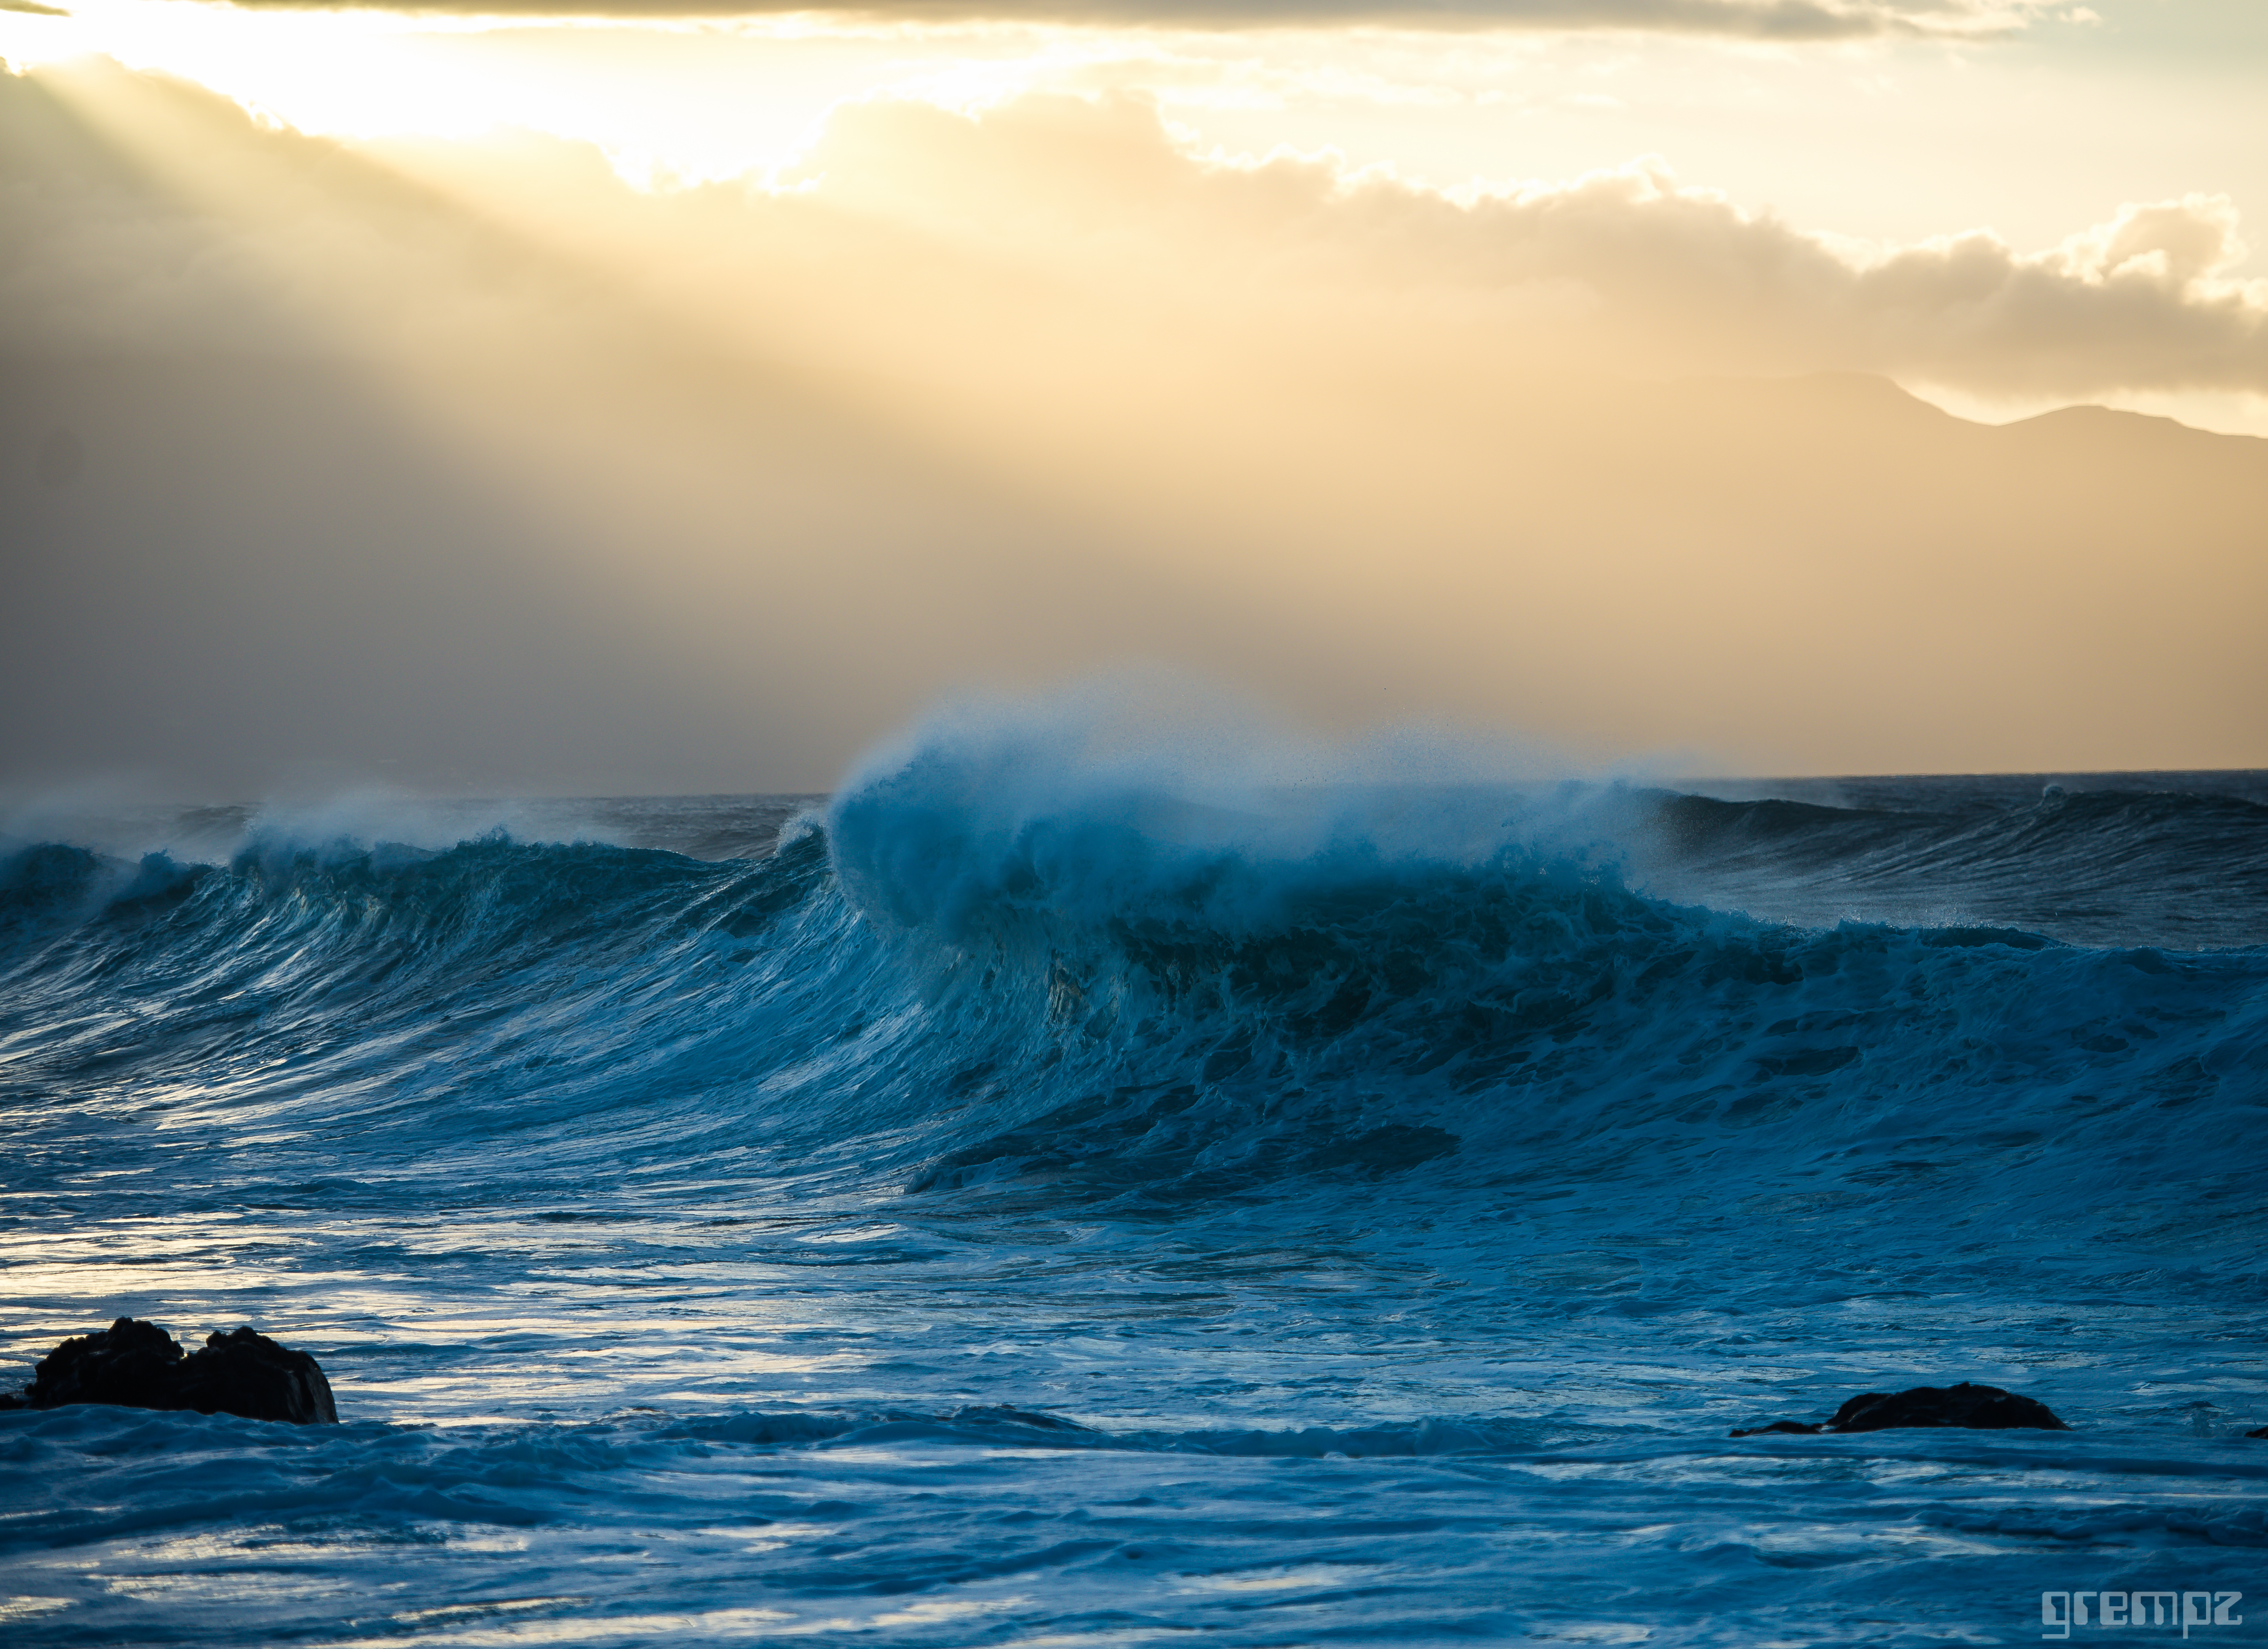 Tapping into Ocean Power